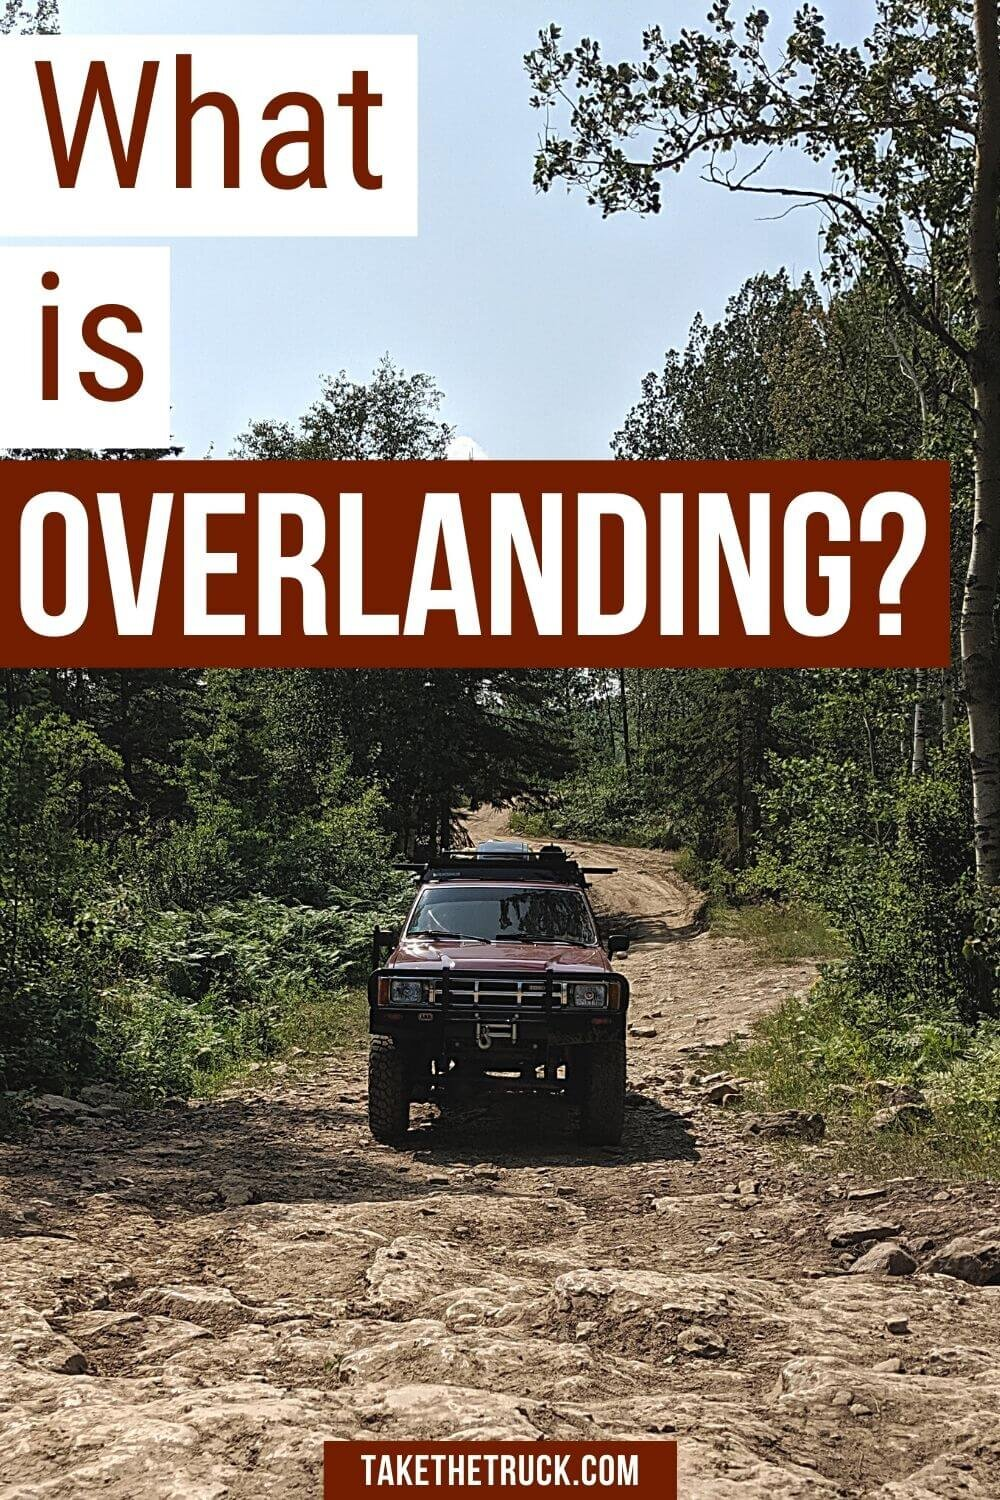 Quick and fun read about the history of overlanding and overland travel in the U.S. Helps to answer the question, What is overlanding? and gives some overlanding basics for beginners.